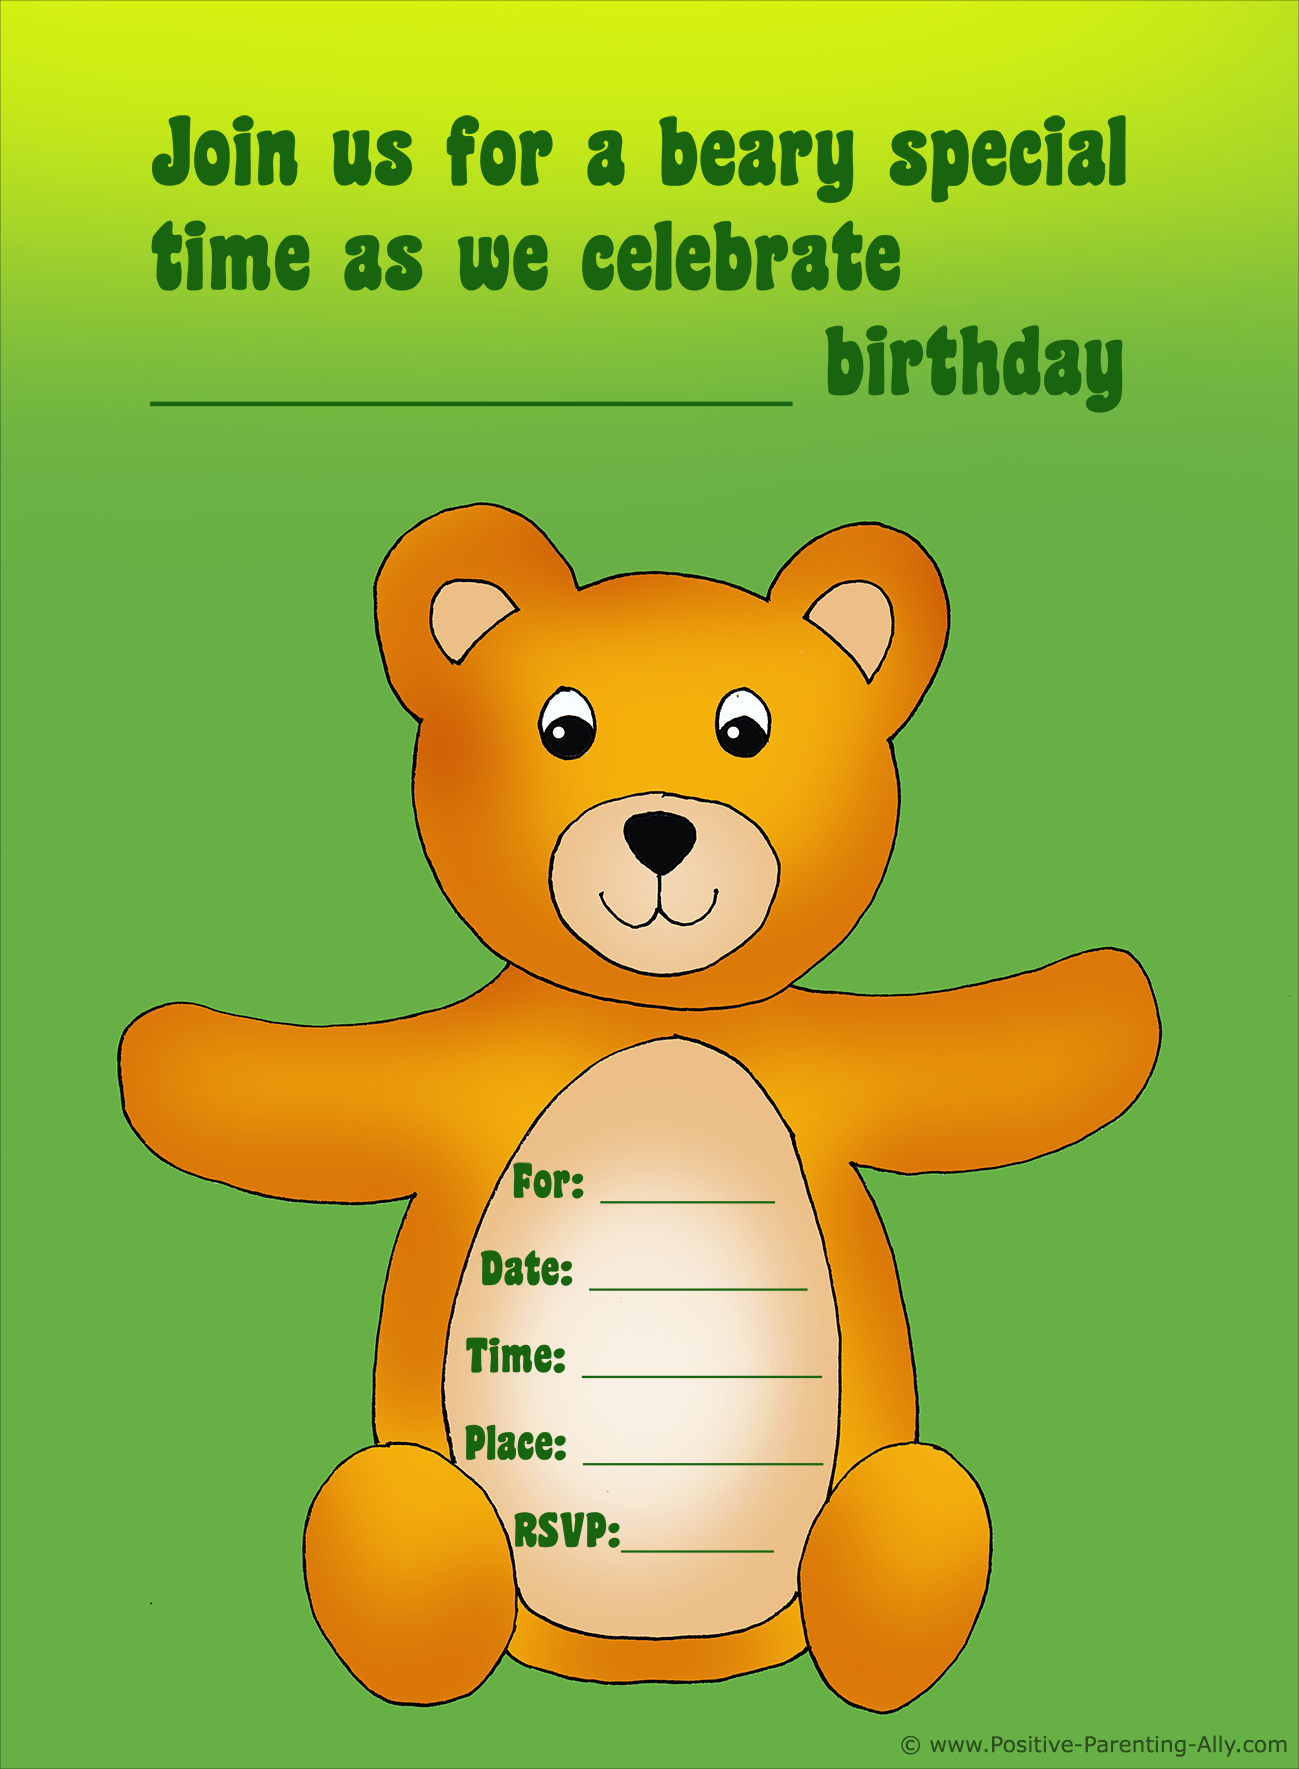 Cute teddy bear birthday party invitation to print.